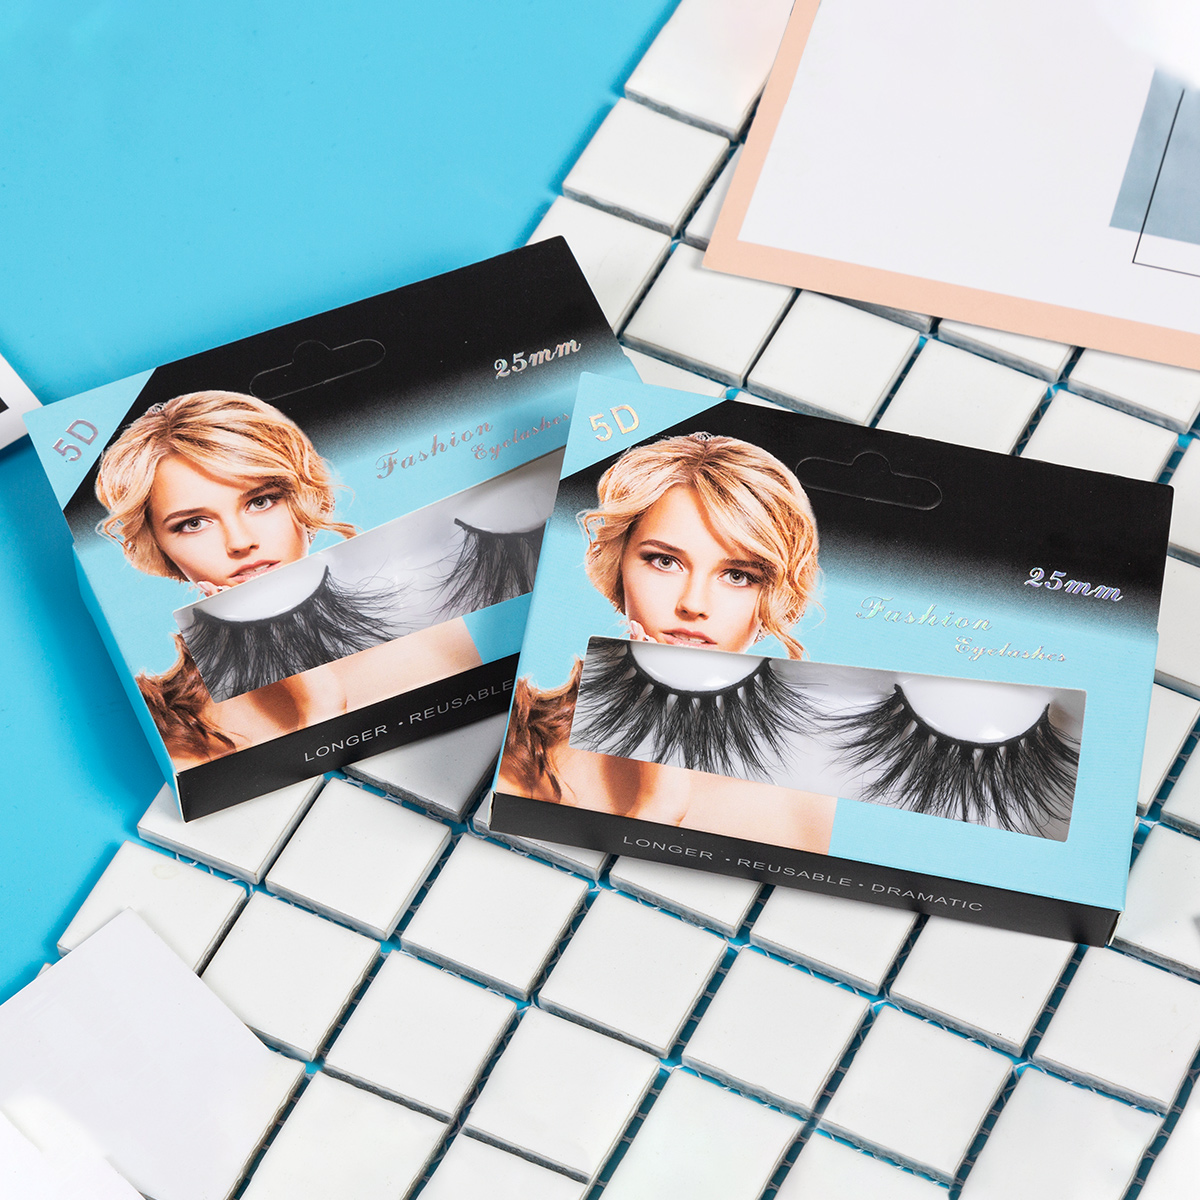 Image 5 - SEXYSHEEP 25mm 5D Mink Eyelashes 100% Cruelty free Lashes Handmade Reusable Natural Eyelashes Popular False Lashes Makeup-in False Eyelashes from Beauty & Health